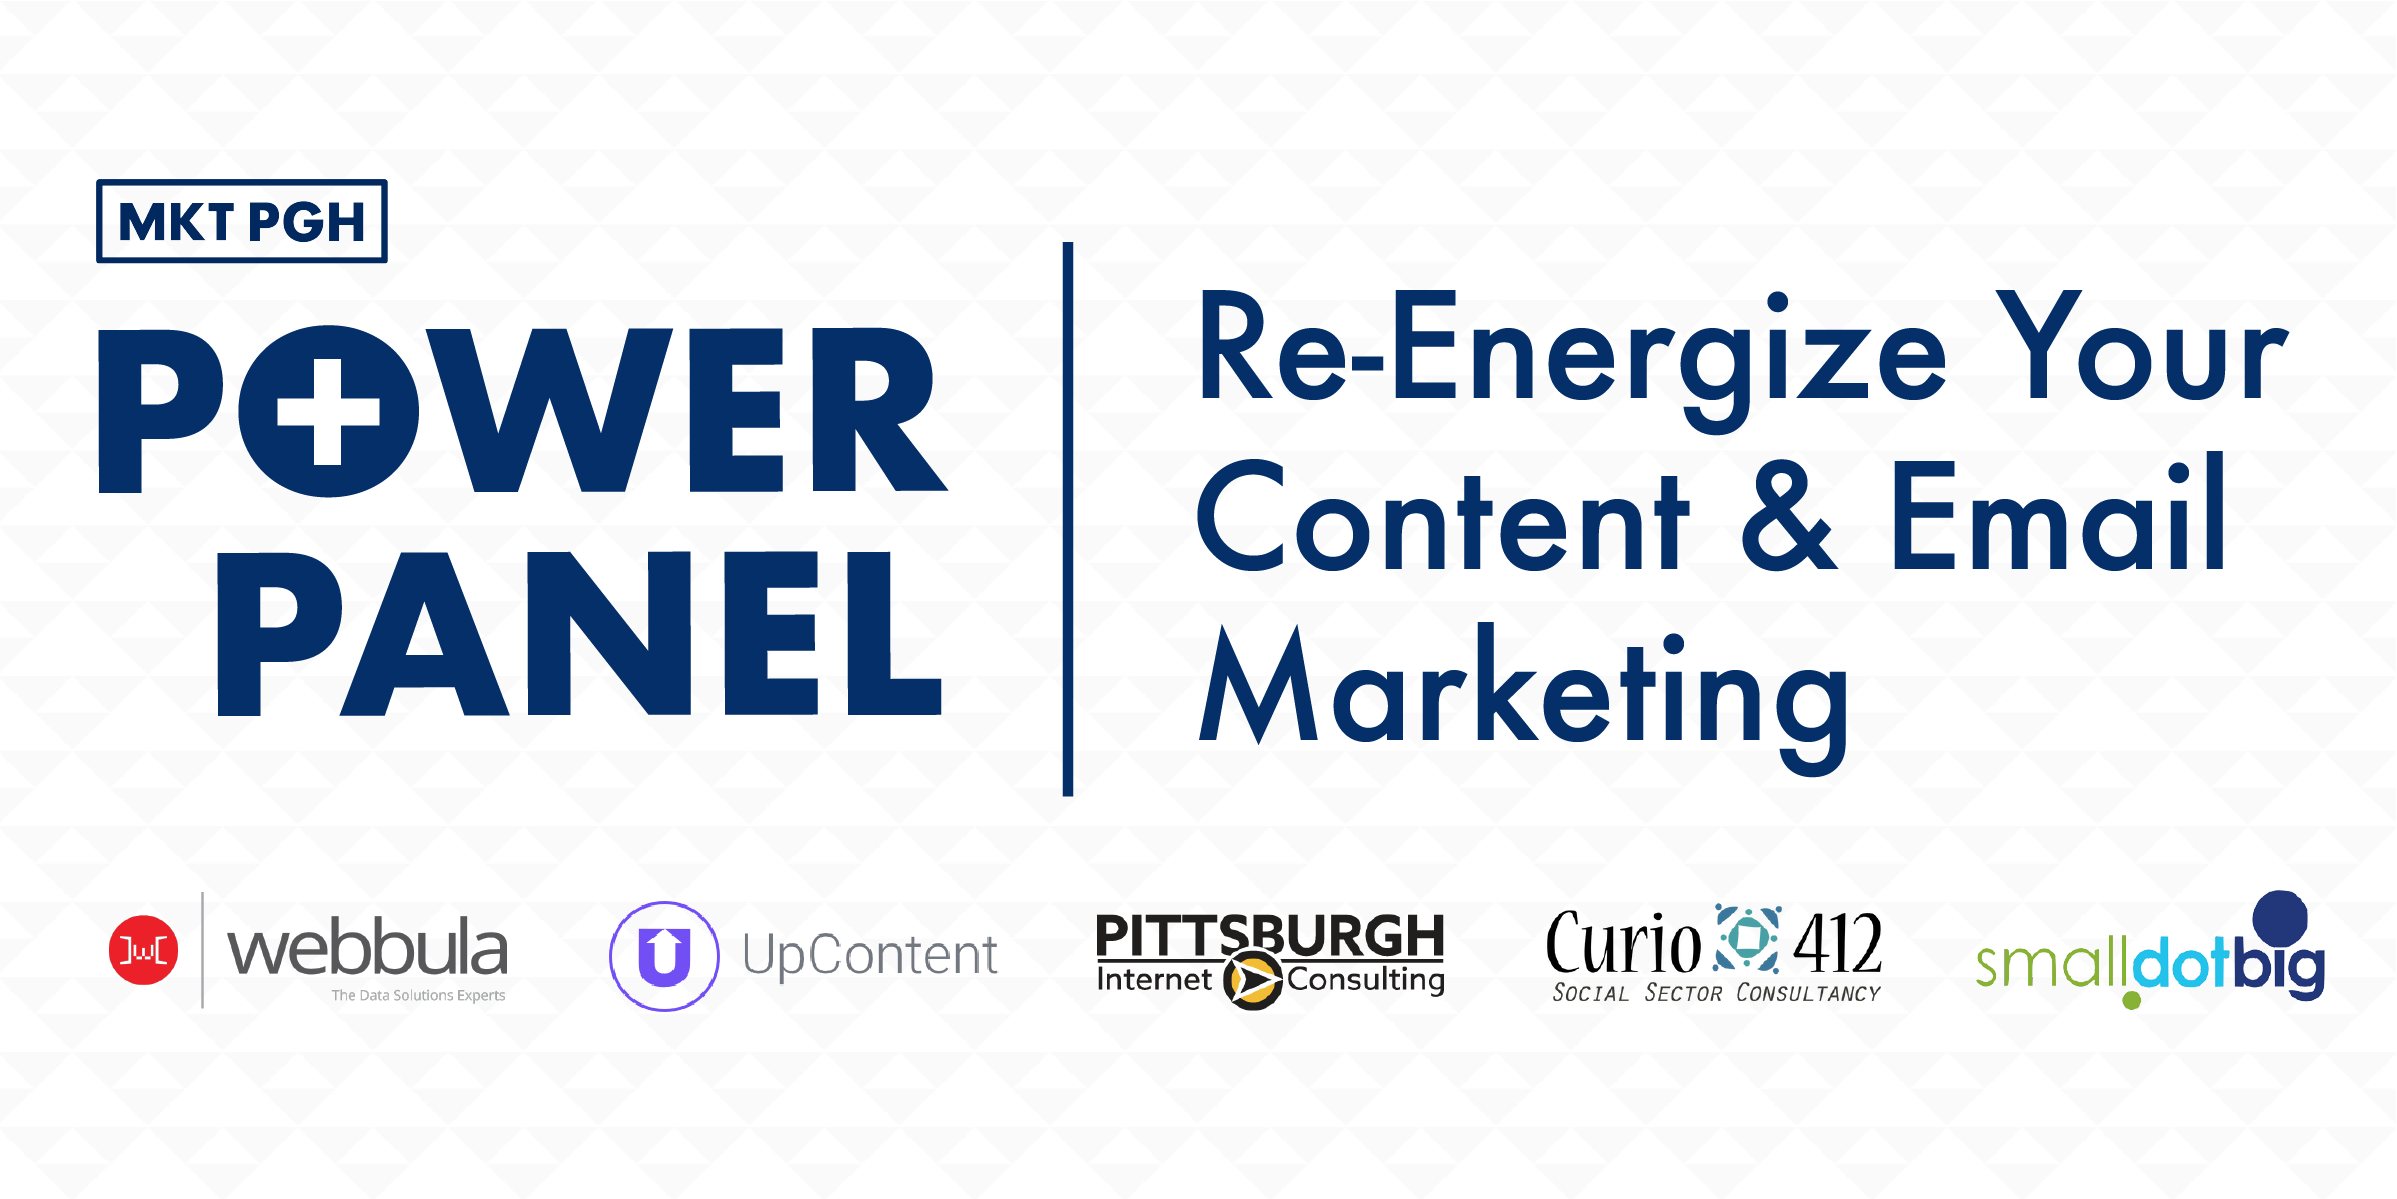 Power Panel: Re-Energize Your Content & Email Marketing